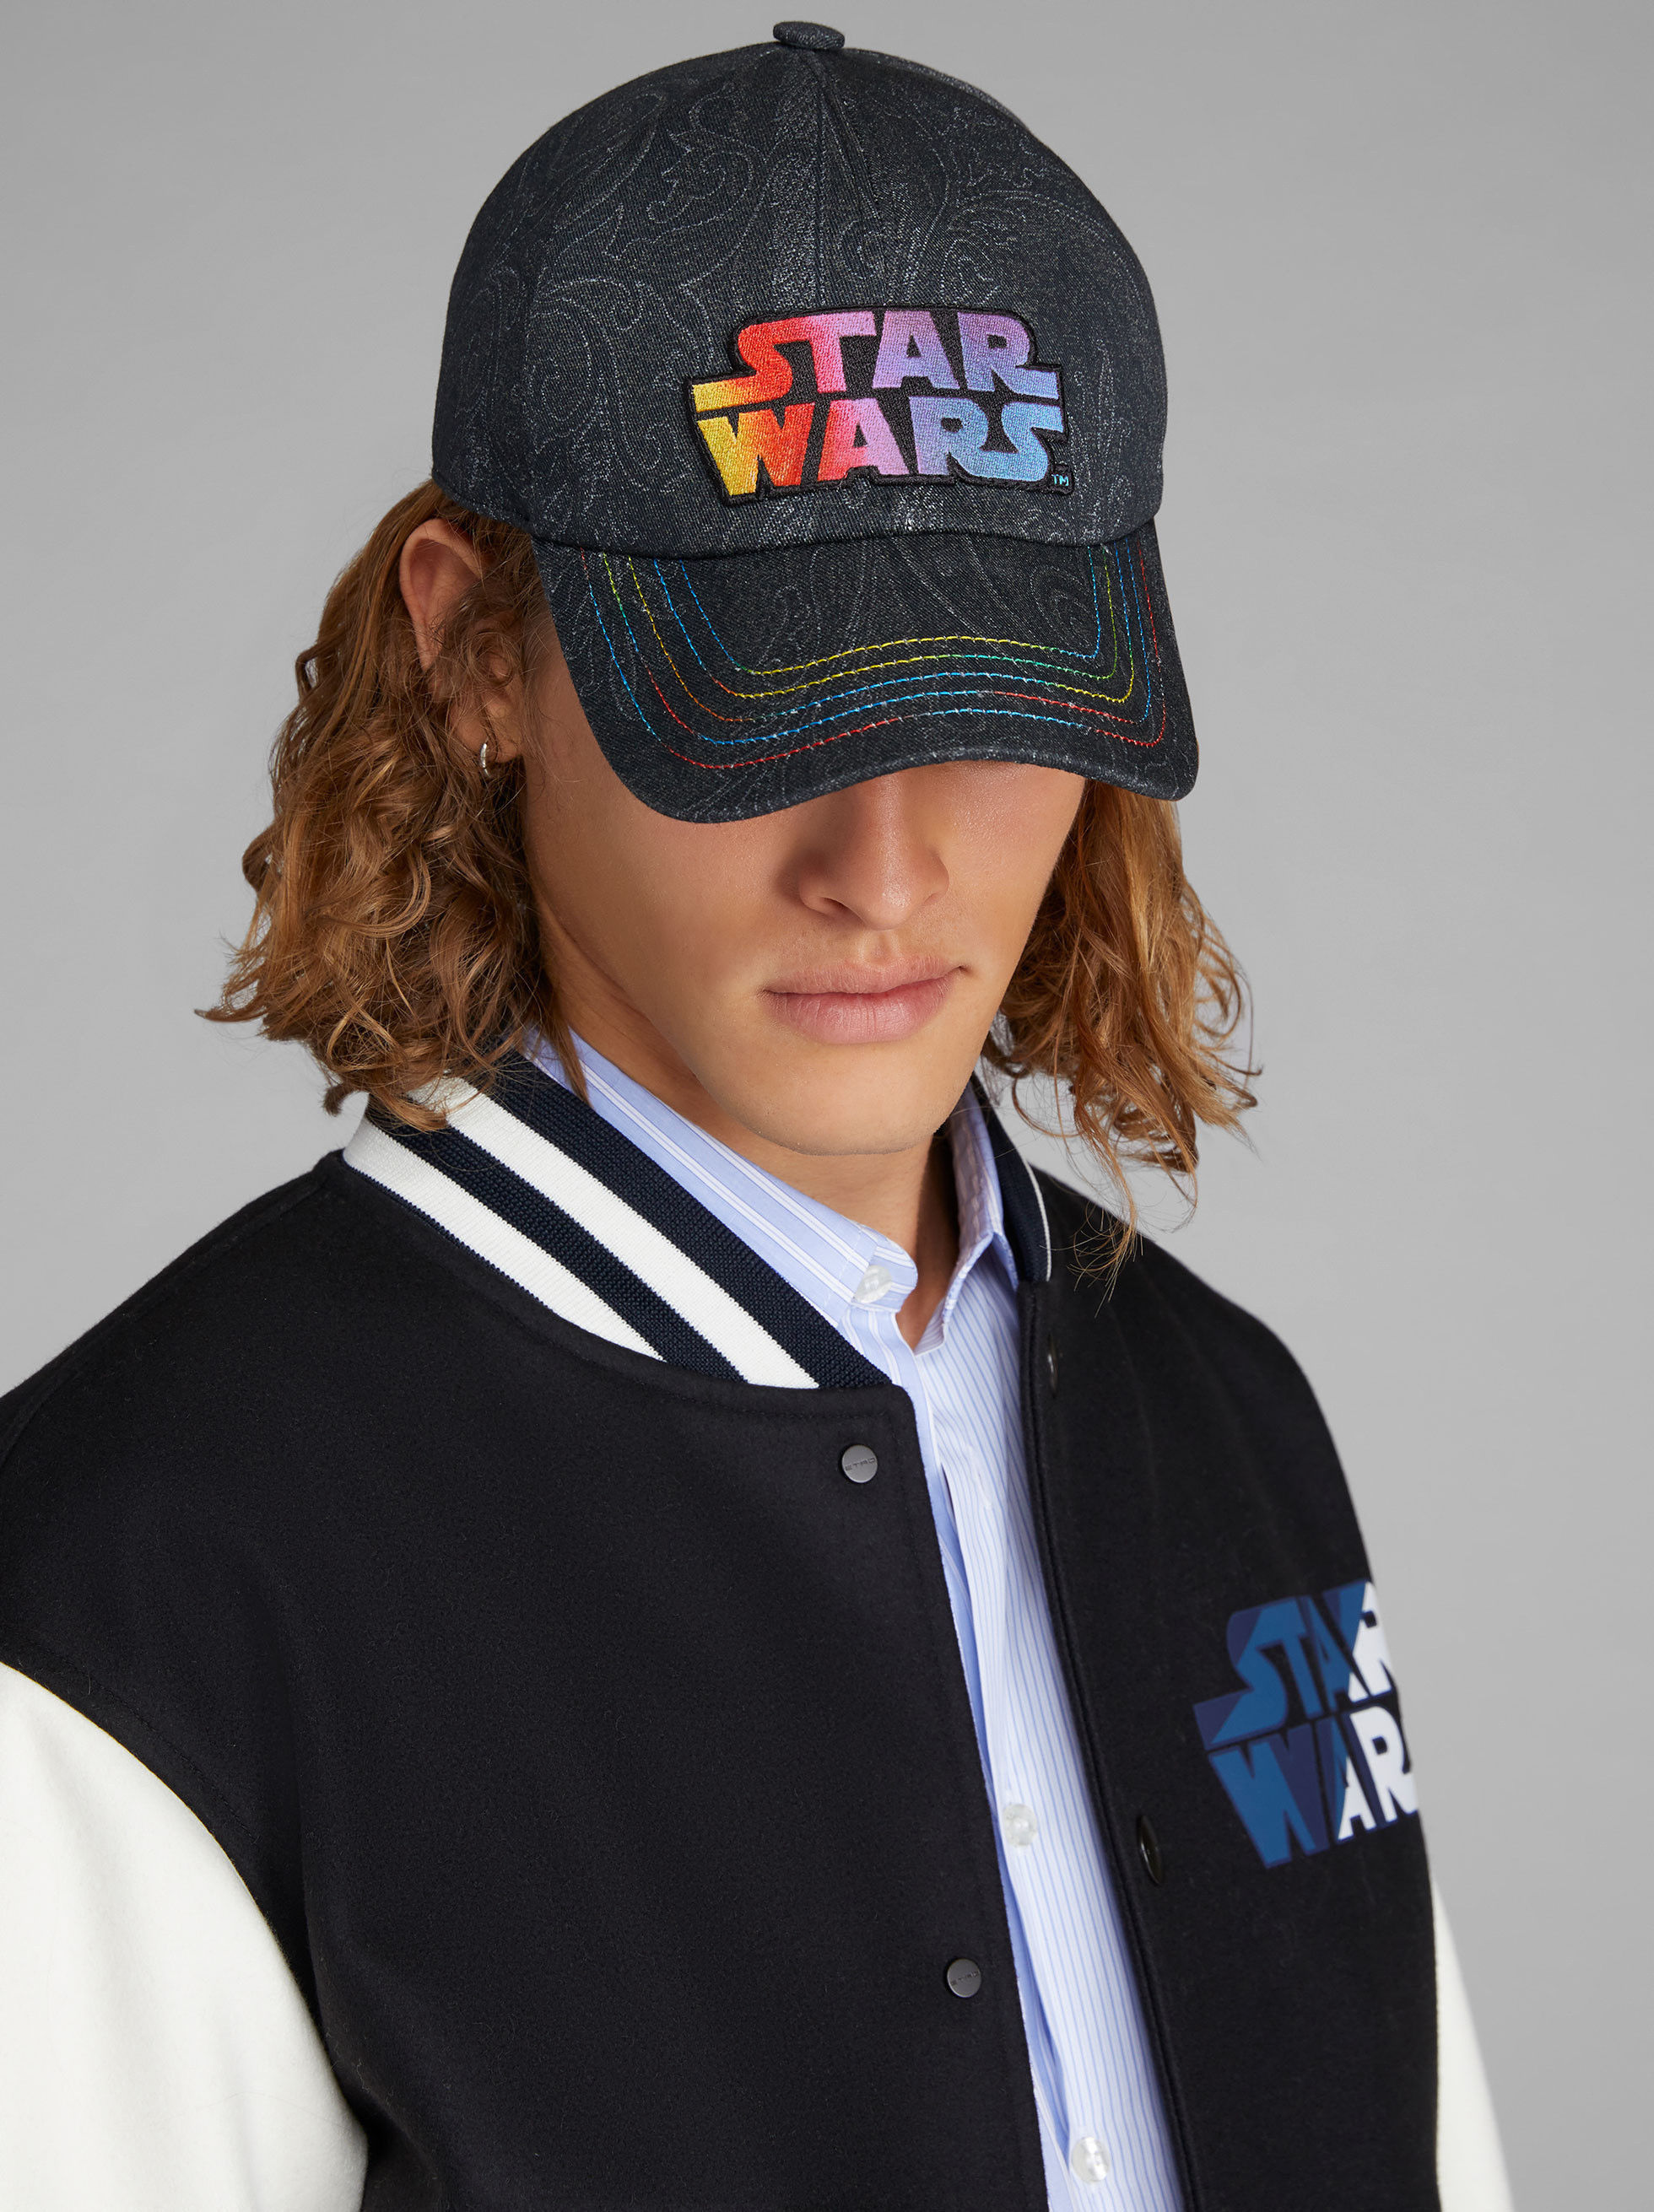 ETRO X STAR WARS BASEBALL HAT